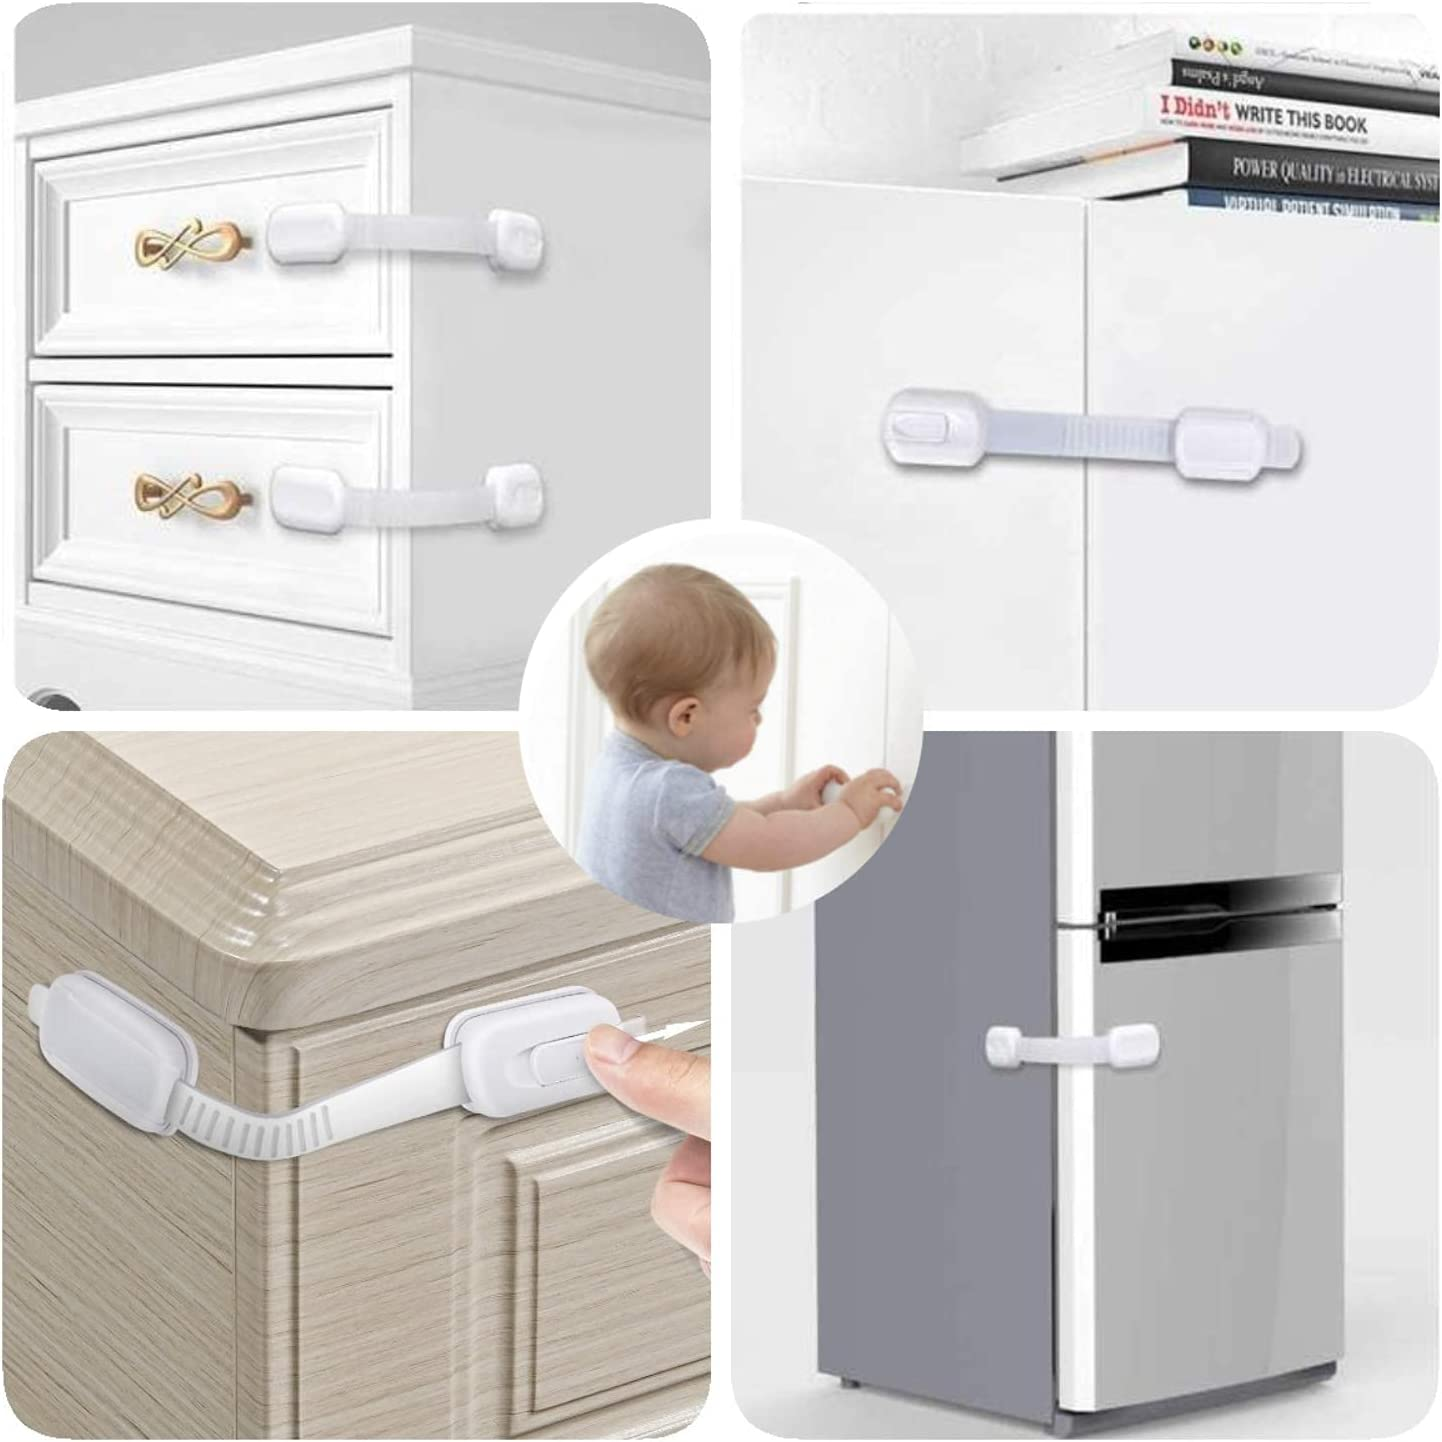 Child Safety Cabinet Locks Latches, 10 Pack No Drilling Baby Proof Locks for Cabinet Drawer Refrigerator Toilet Oven Dishwasher Kitchen Bathroom Baby Safety Latches Locks for Toddler Kid